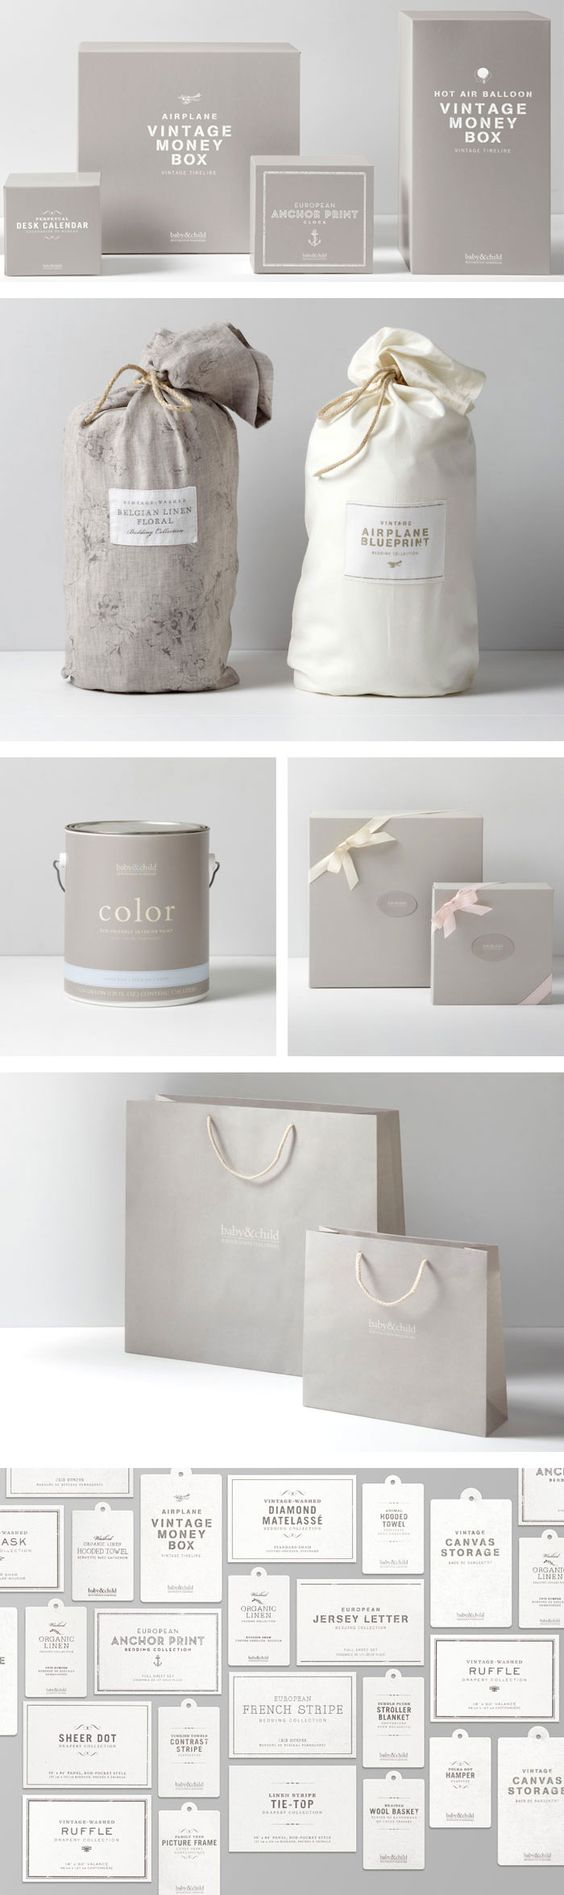 branding and advertising of soaps and Cretíque a gallery of inspiration  simple branding design with gray and copper jan 21,  2015 by james in branding & advertising.